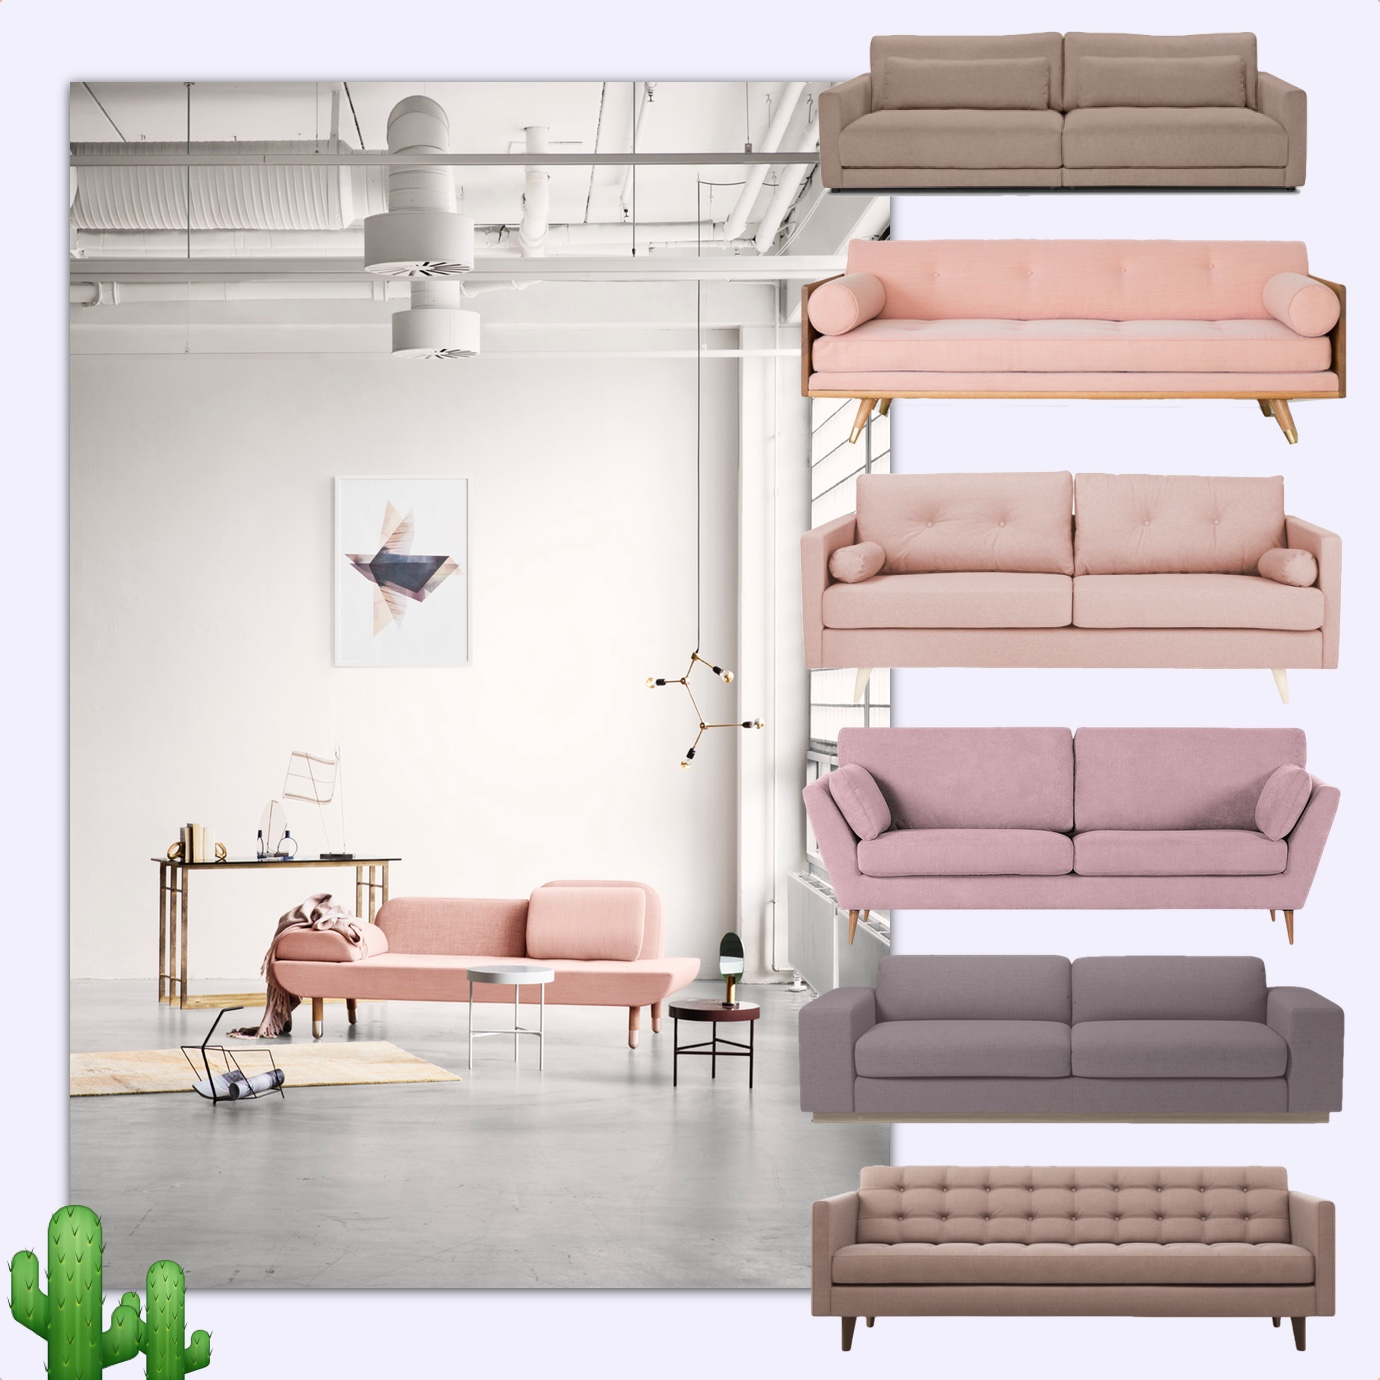 Rosa Sofa Couch Rosa Fabulous Sof Rosa Beb With Couch Rosa Rosa Sofa By